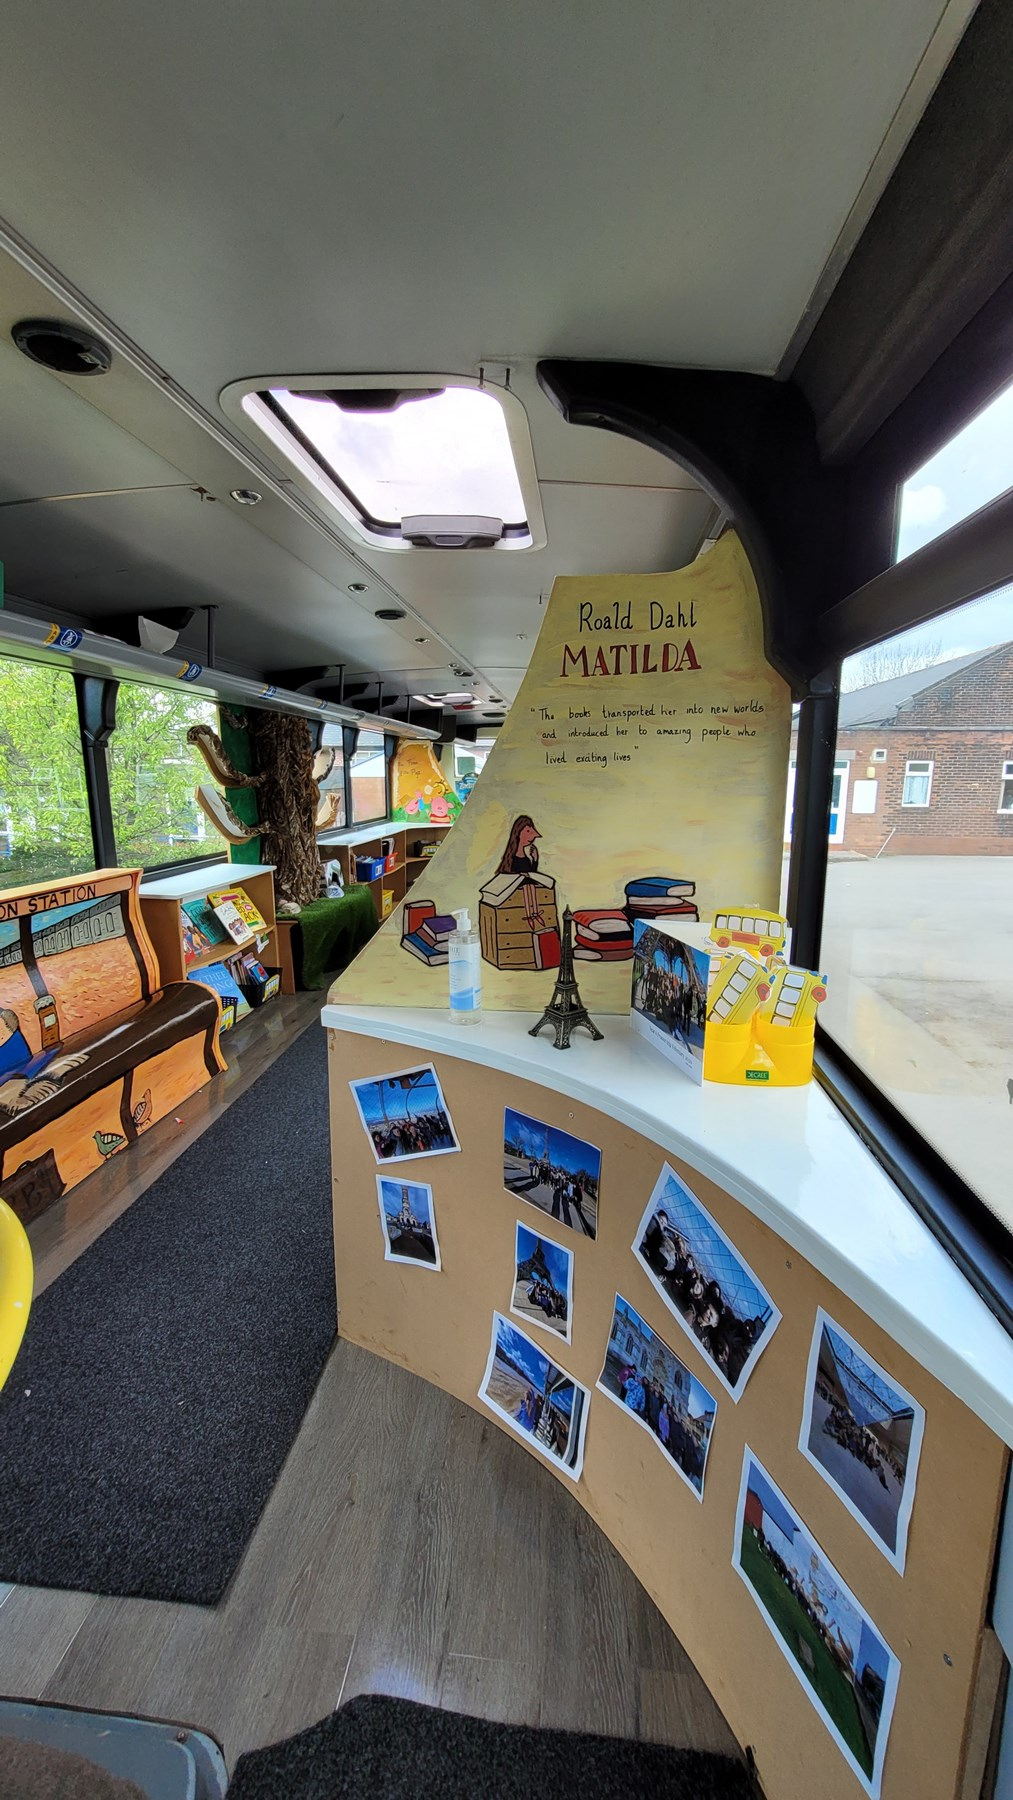 St Stephen's yellow school bus 6: A decommissioned yellow school bus, donated by TfGM to St Stephen's Primary School in Droylseden in 2019. The school turned the bus into a reading and tutoring place.